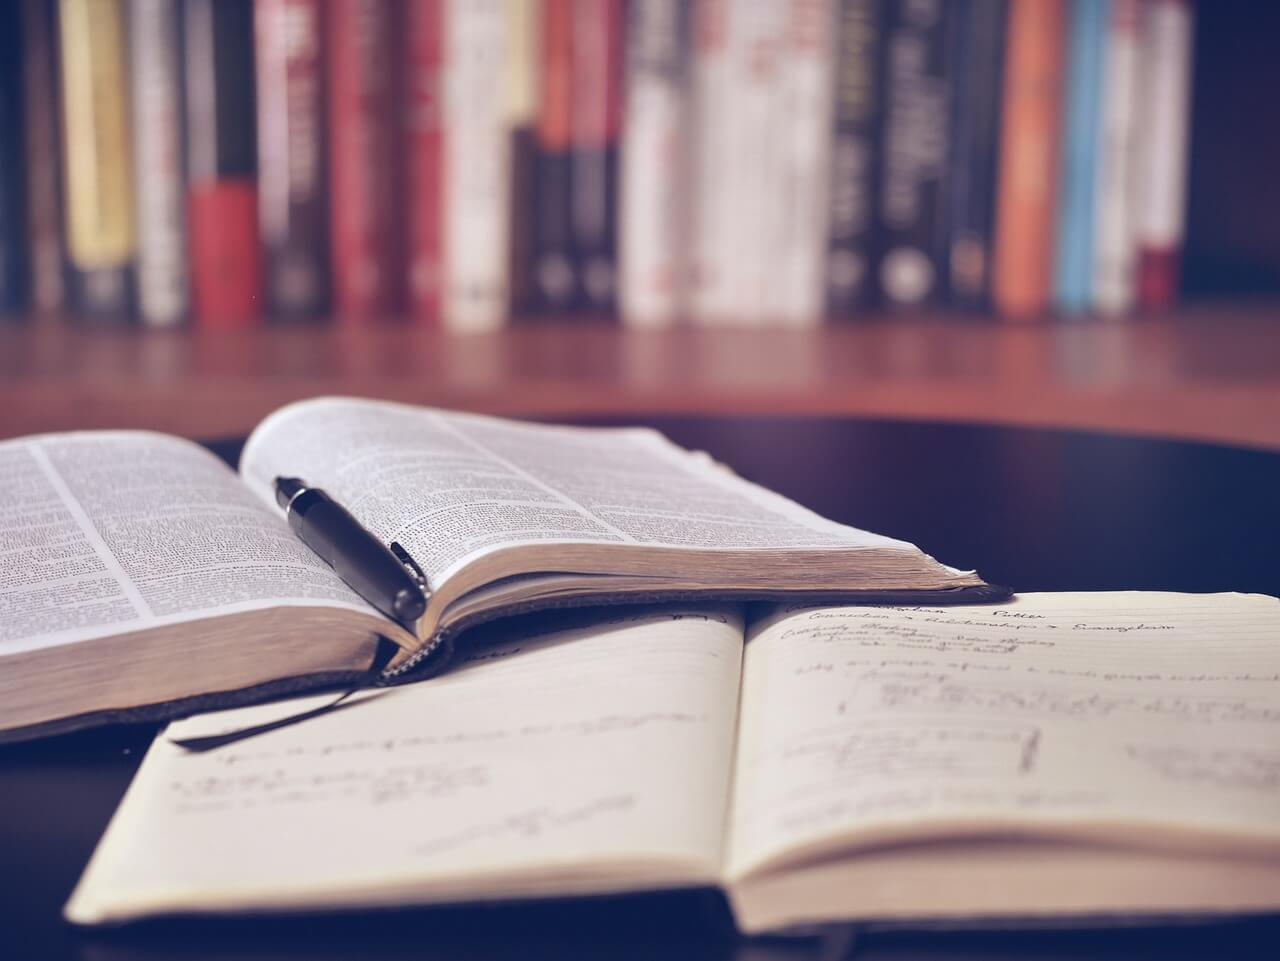 How To Study: 3 Popular Revision Techniques You Should Avoid